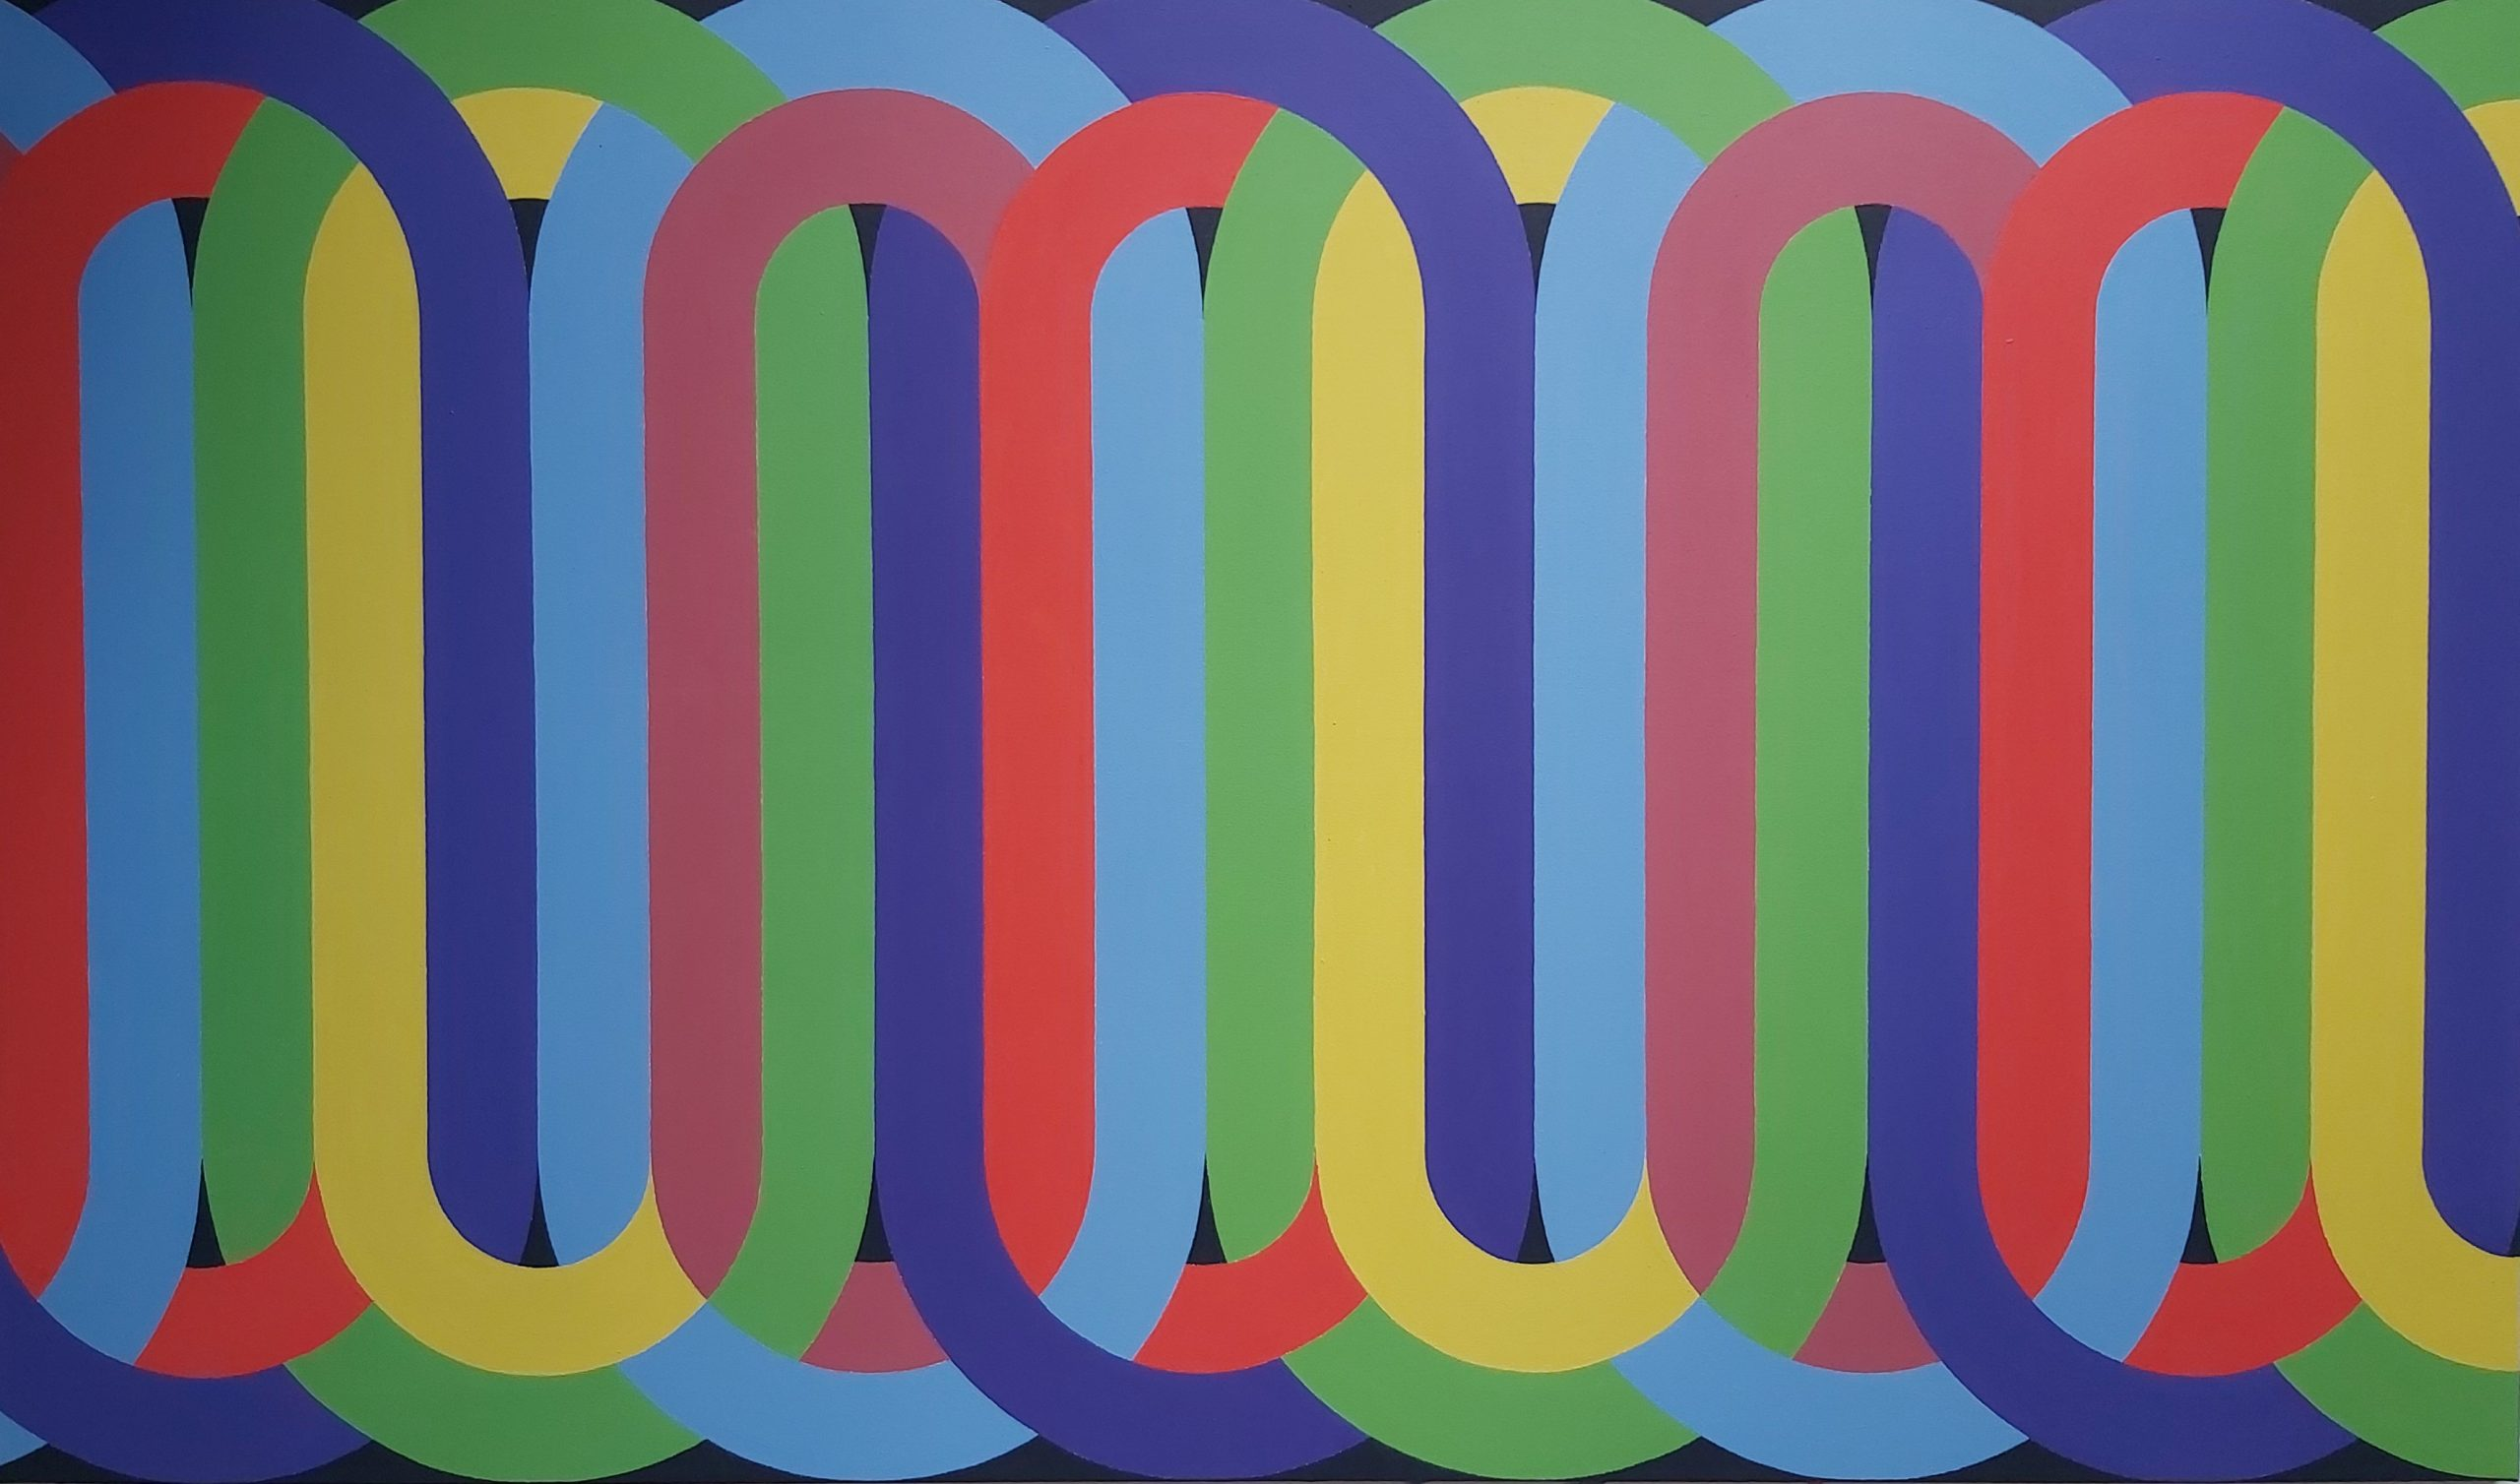 Silsila (Rhythm) 2020 Acrylic on Canvas 107 x 175 cm